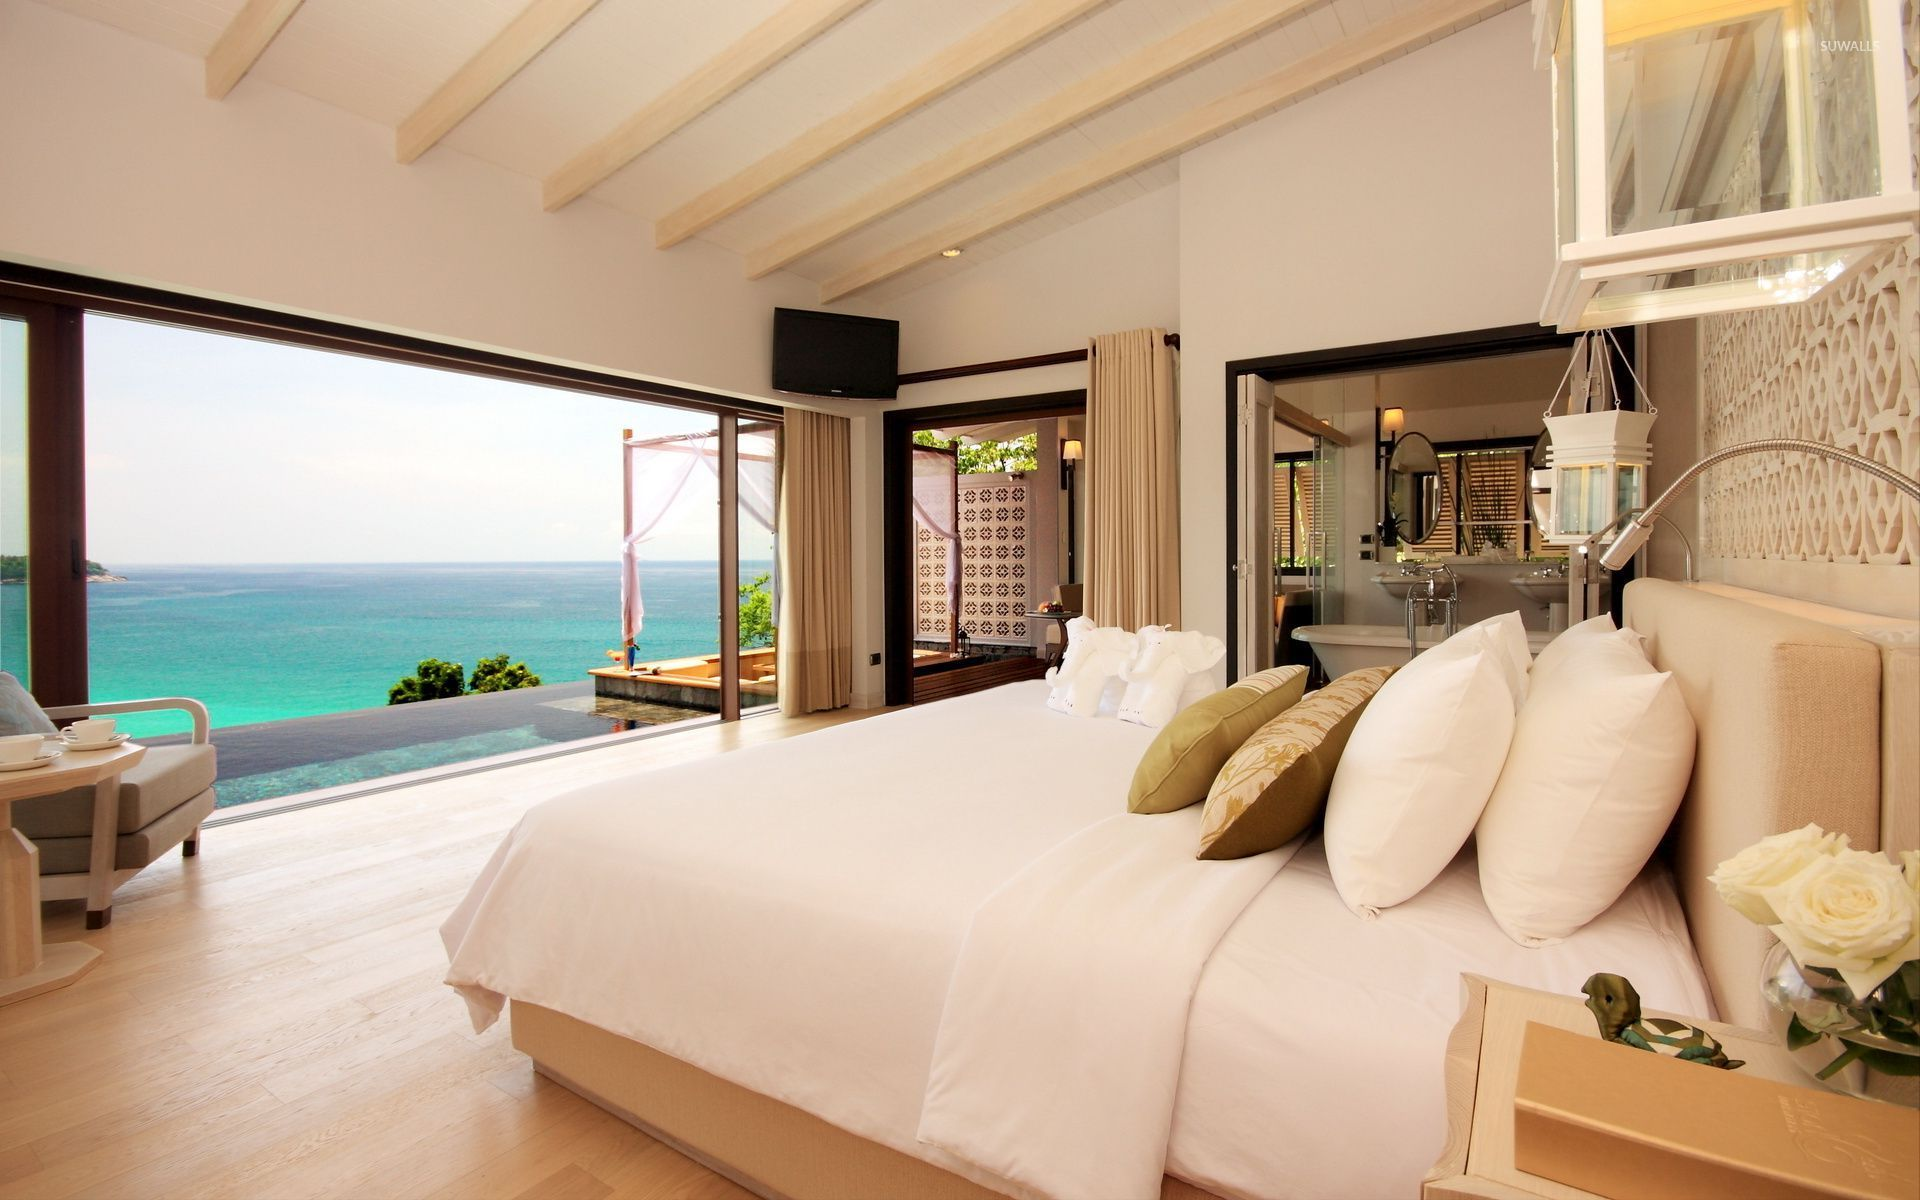 Bedroom with a great view of the ocean wallpaper for Stunning bedroom wallpaper